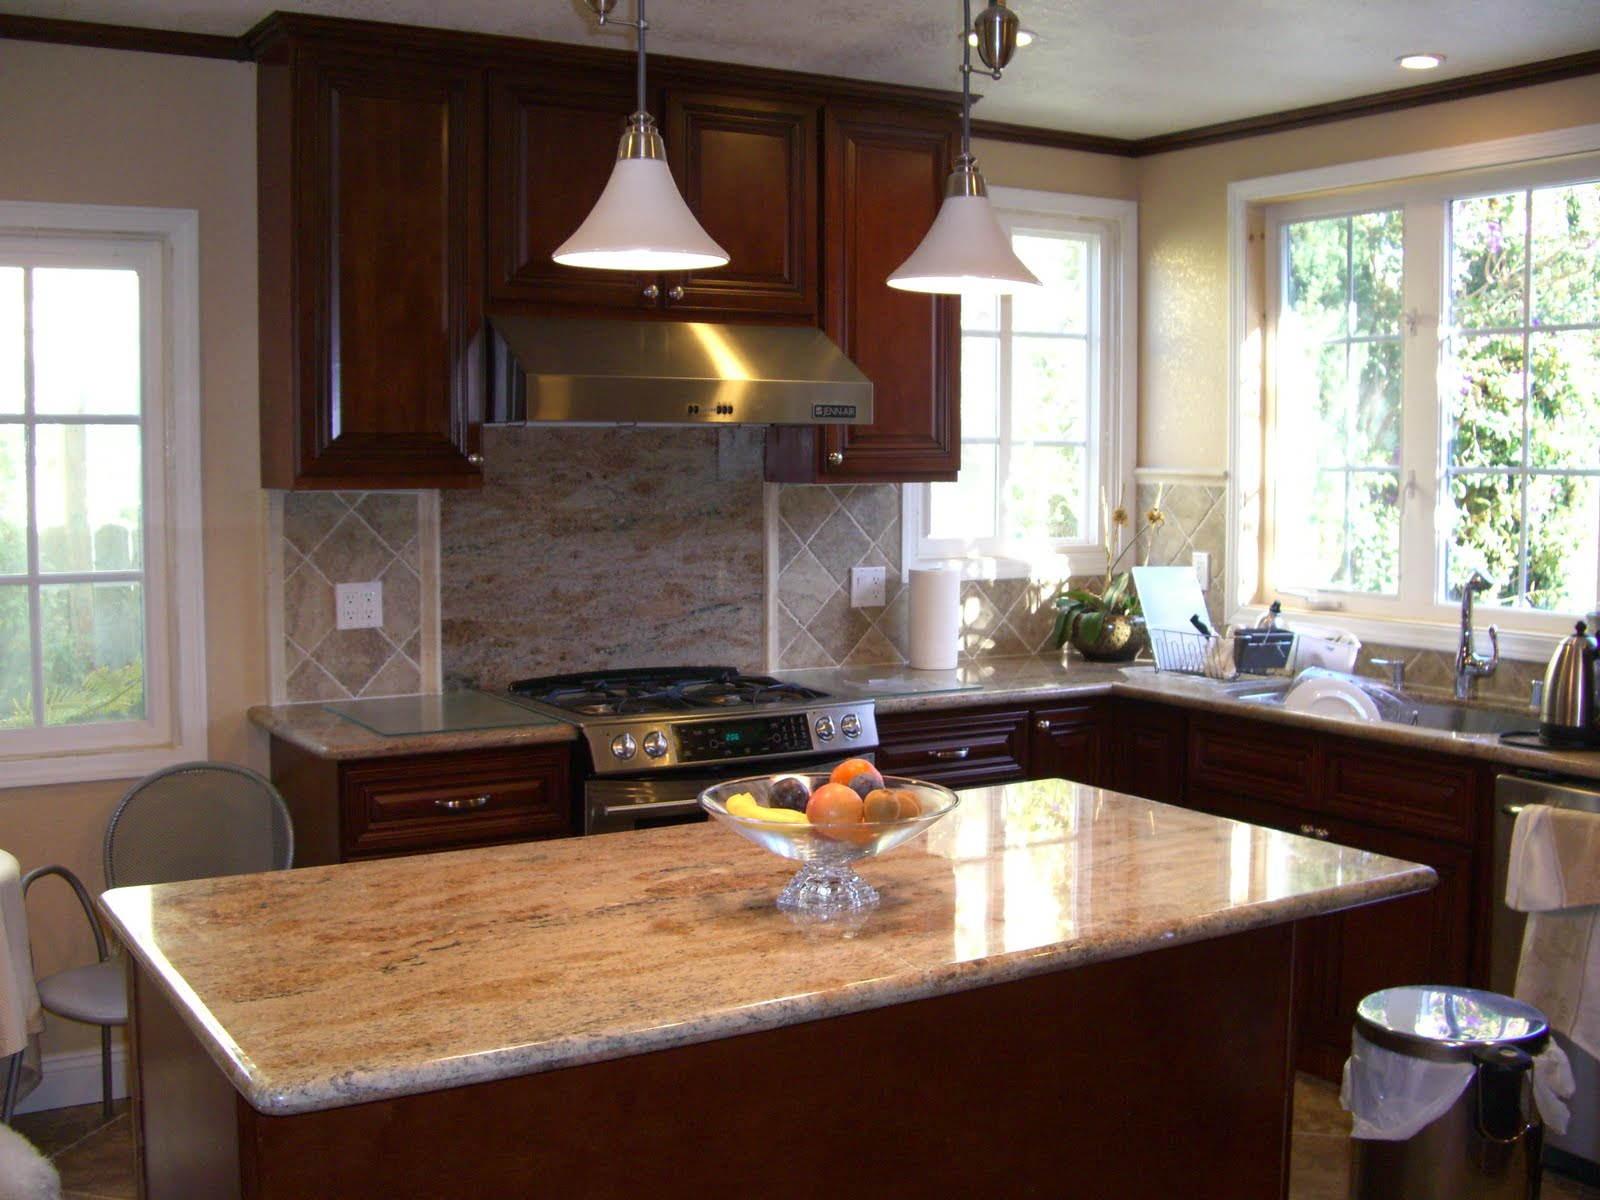 Walnut Cabinets with Granite Countertops